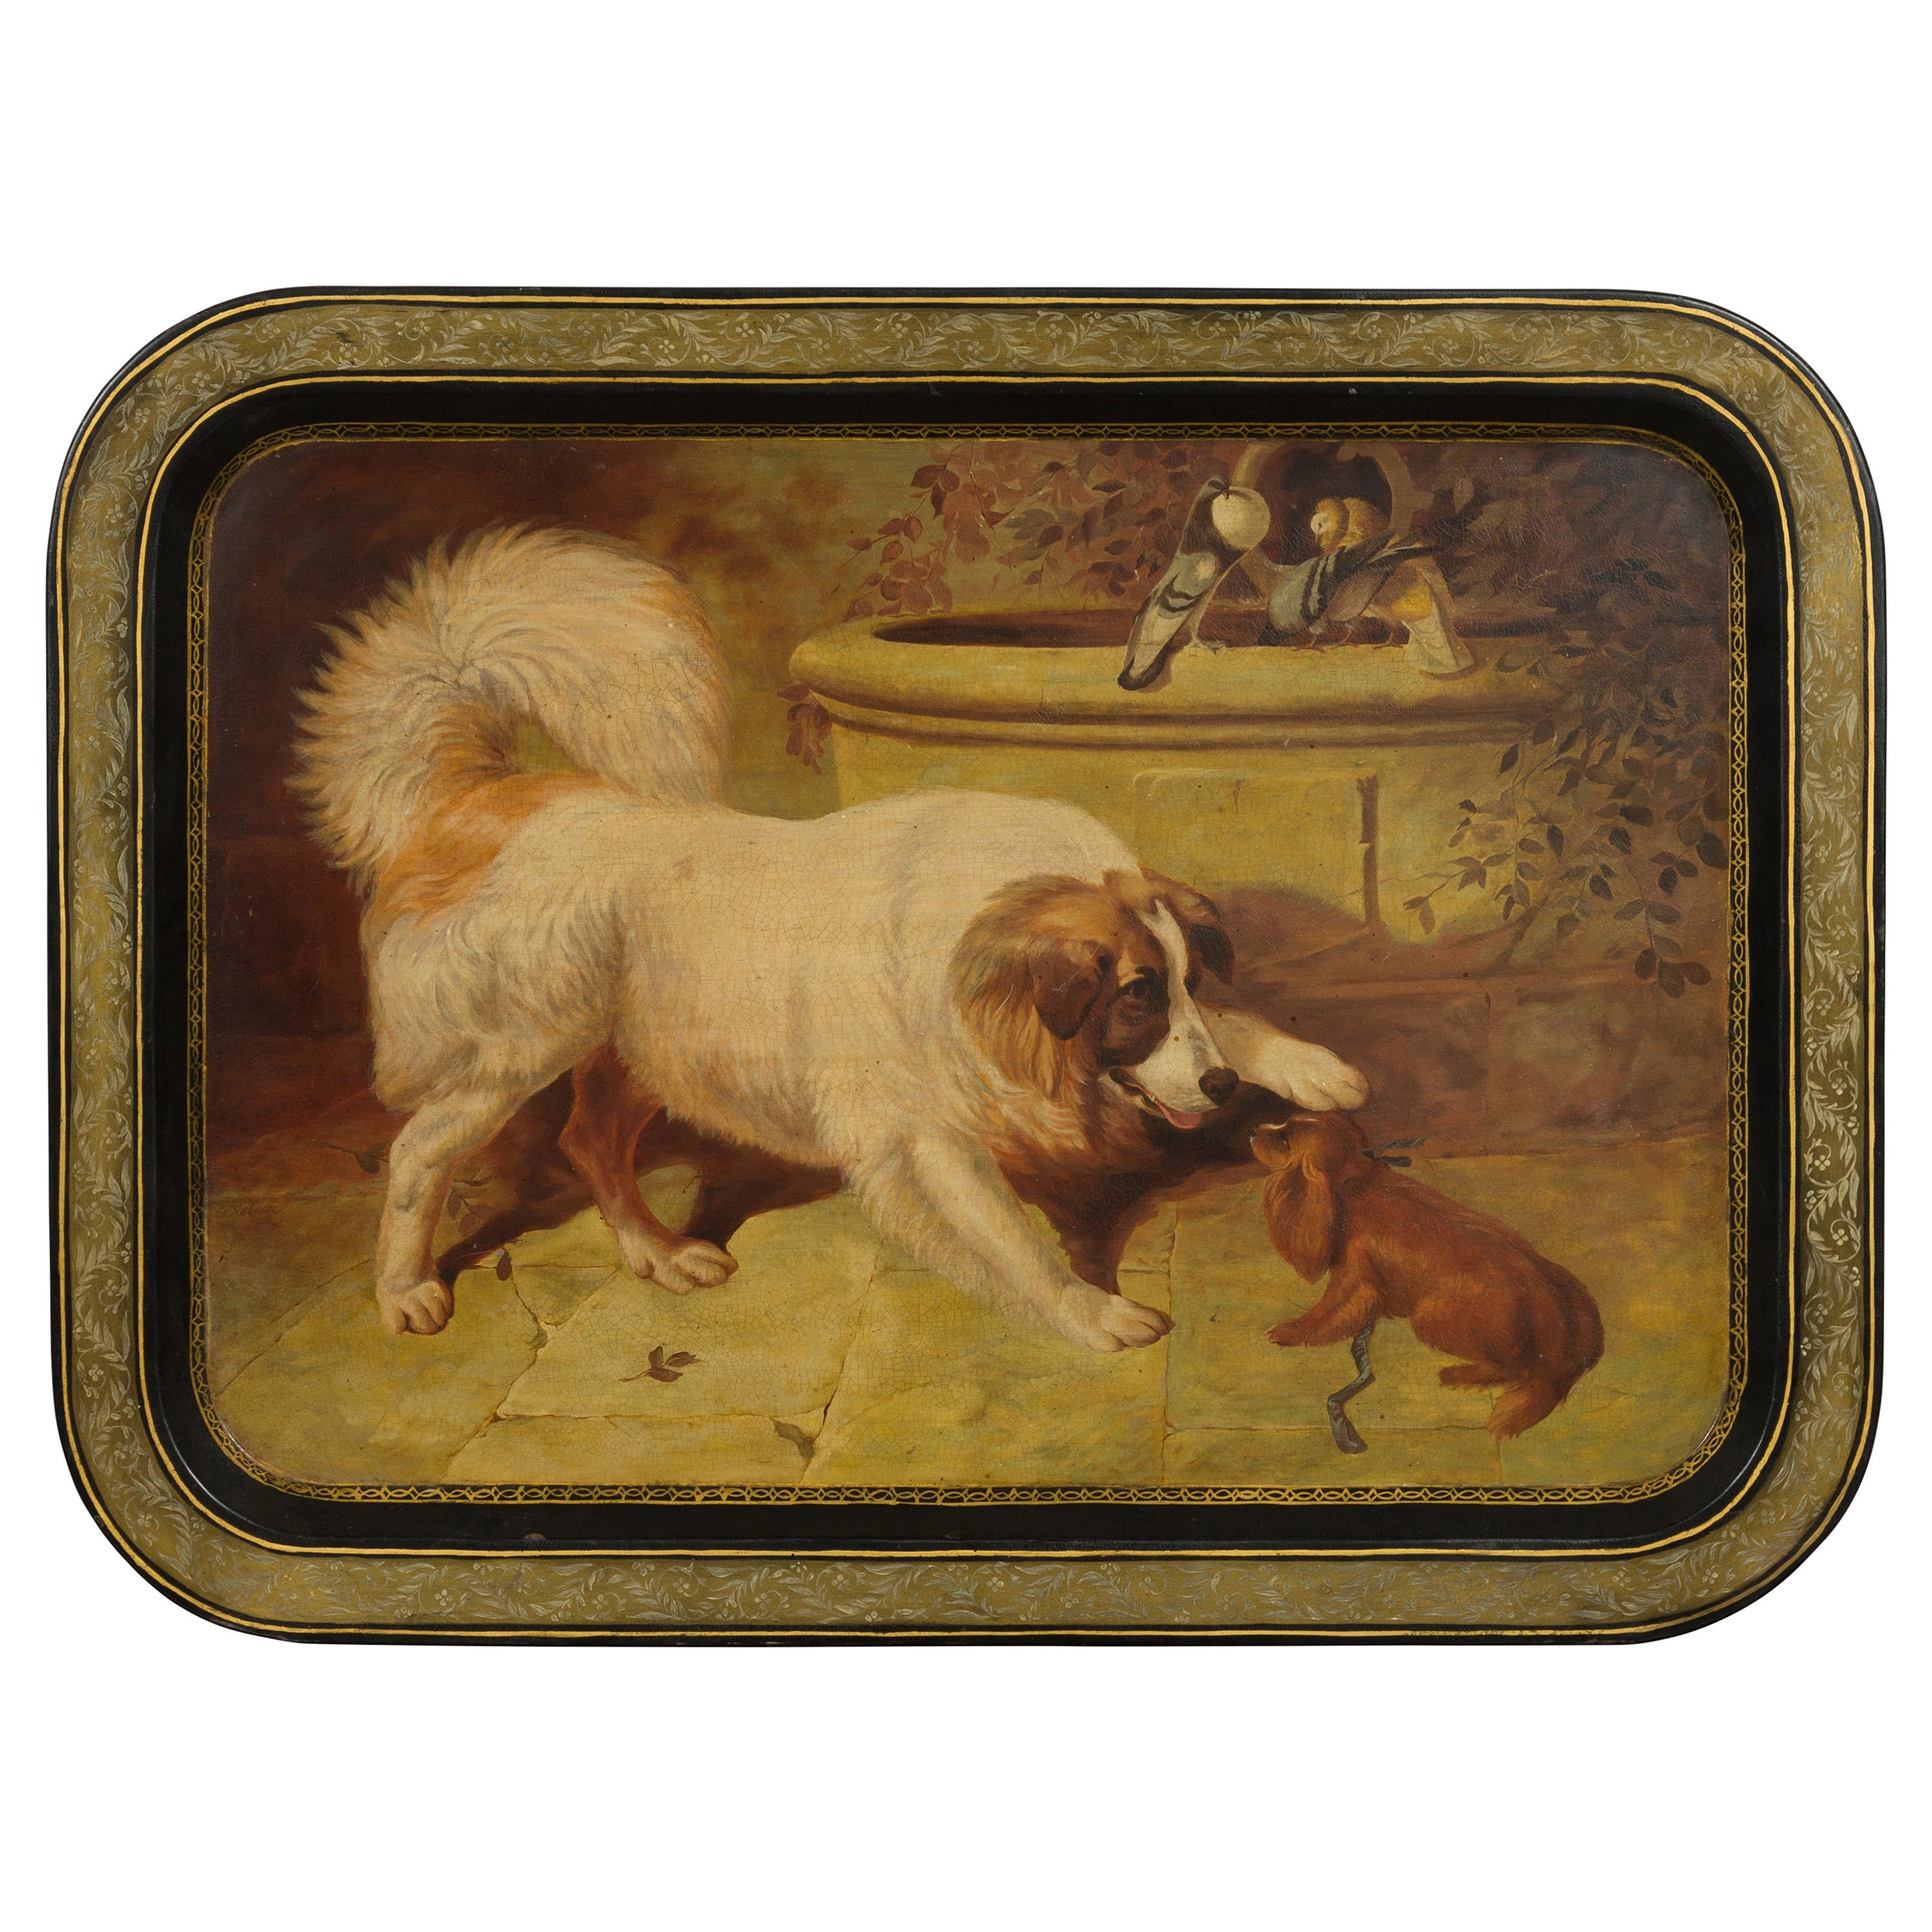 English 19th Century Painted Tôle Tray Depicting Playful Dogs and Turtle Doves